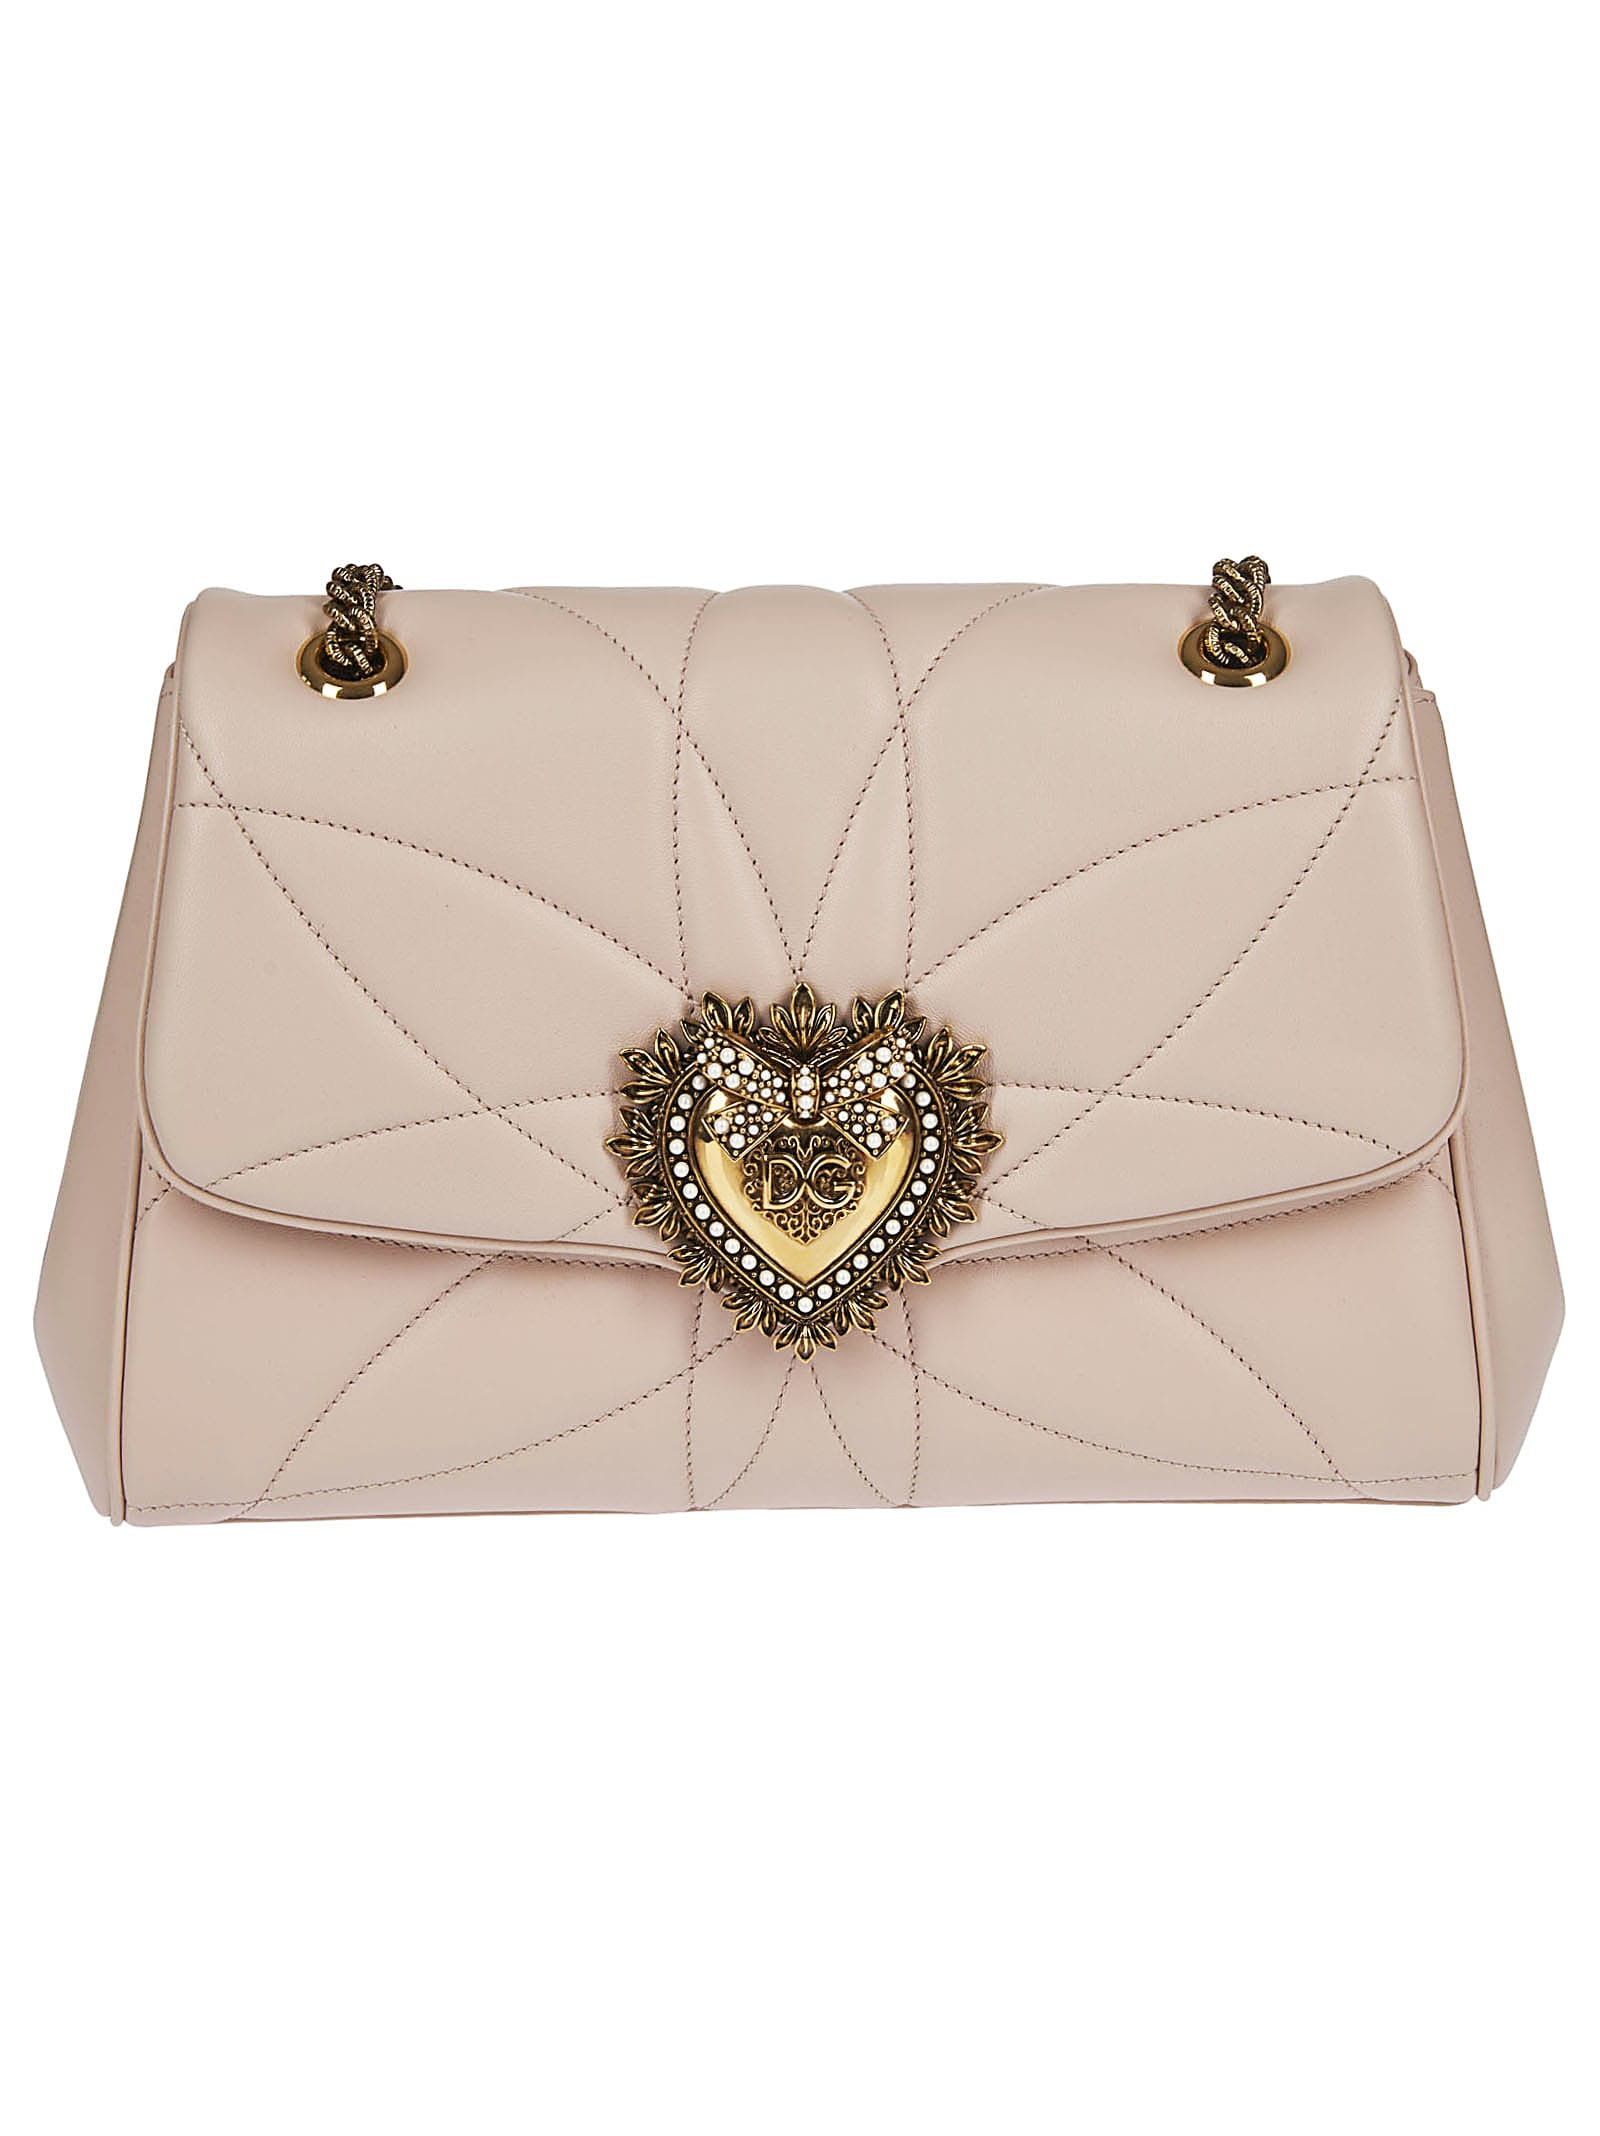 Dolce & Gabbana Quilted Shoulder Bag